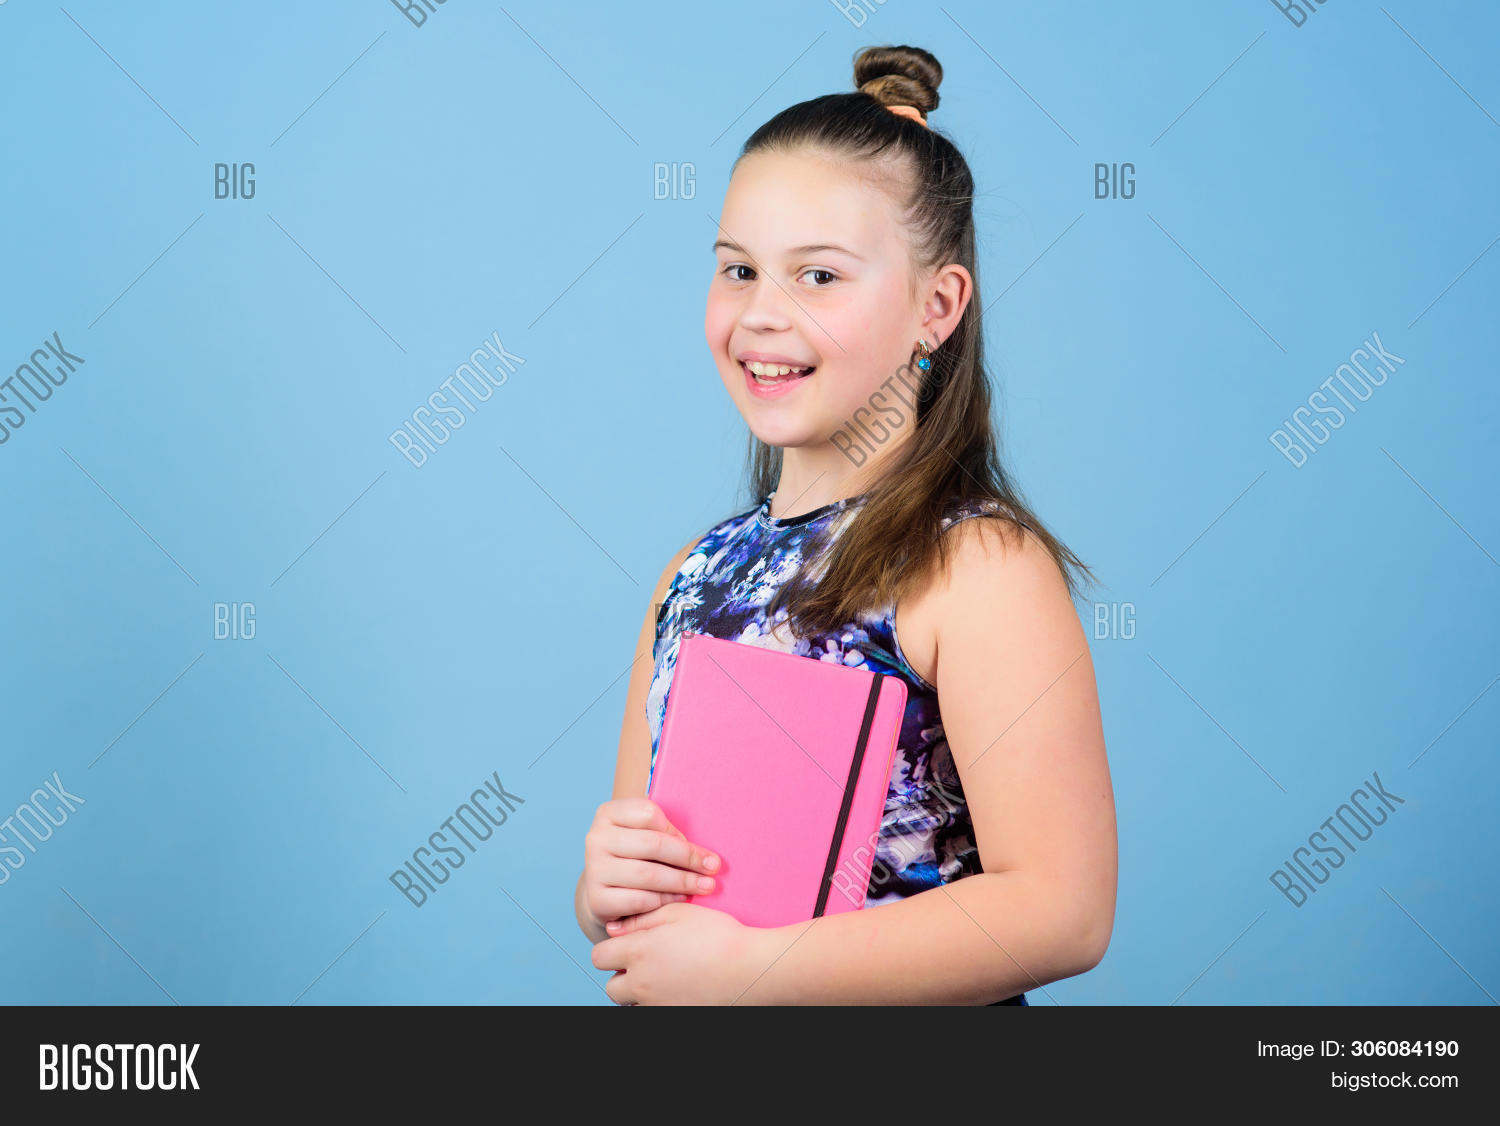 Small Girl Pink Note Image & Photo (Free Trial)   Bigstock